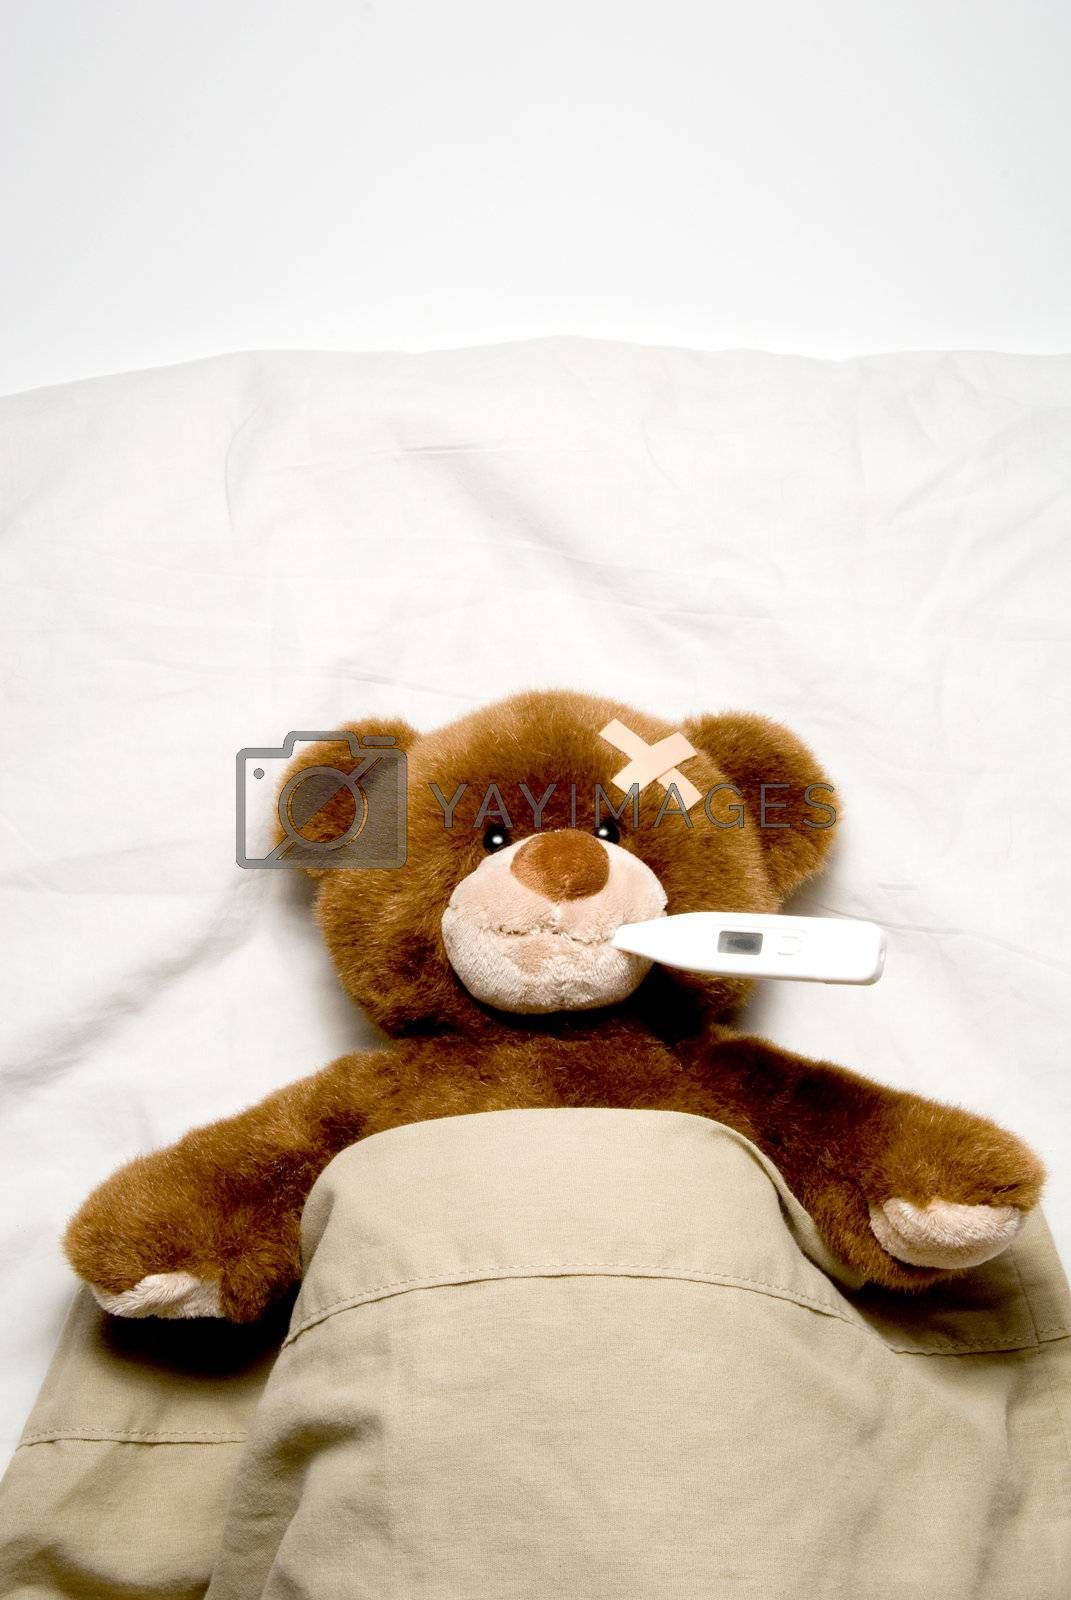 A very Sick Teddy Bear laying in his bed.